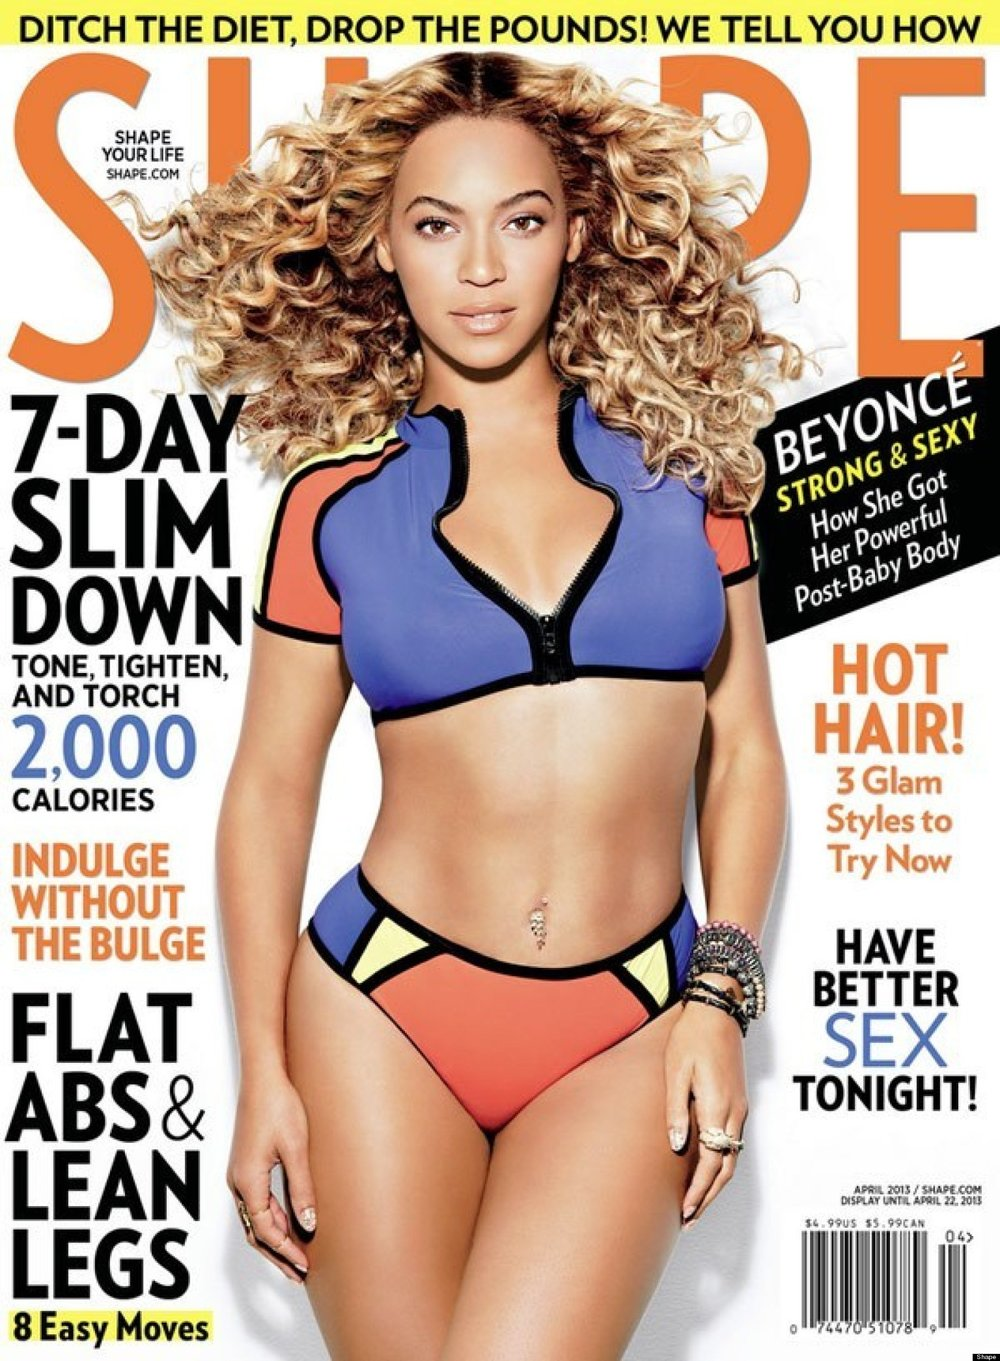 I love Beyonce, but I hate bogus slogans that suggest that a certain move will give you flat abs/lean legs, and lean down in a week.